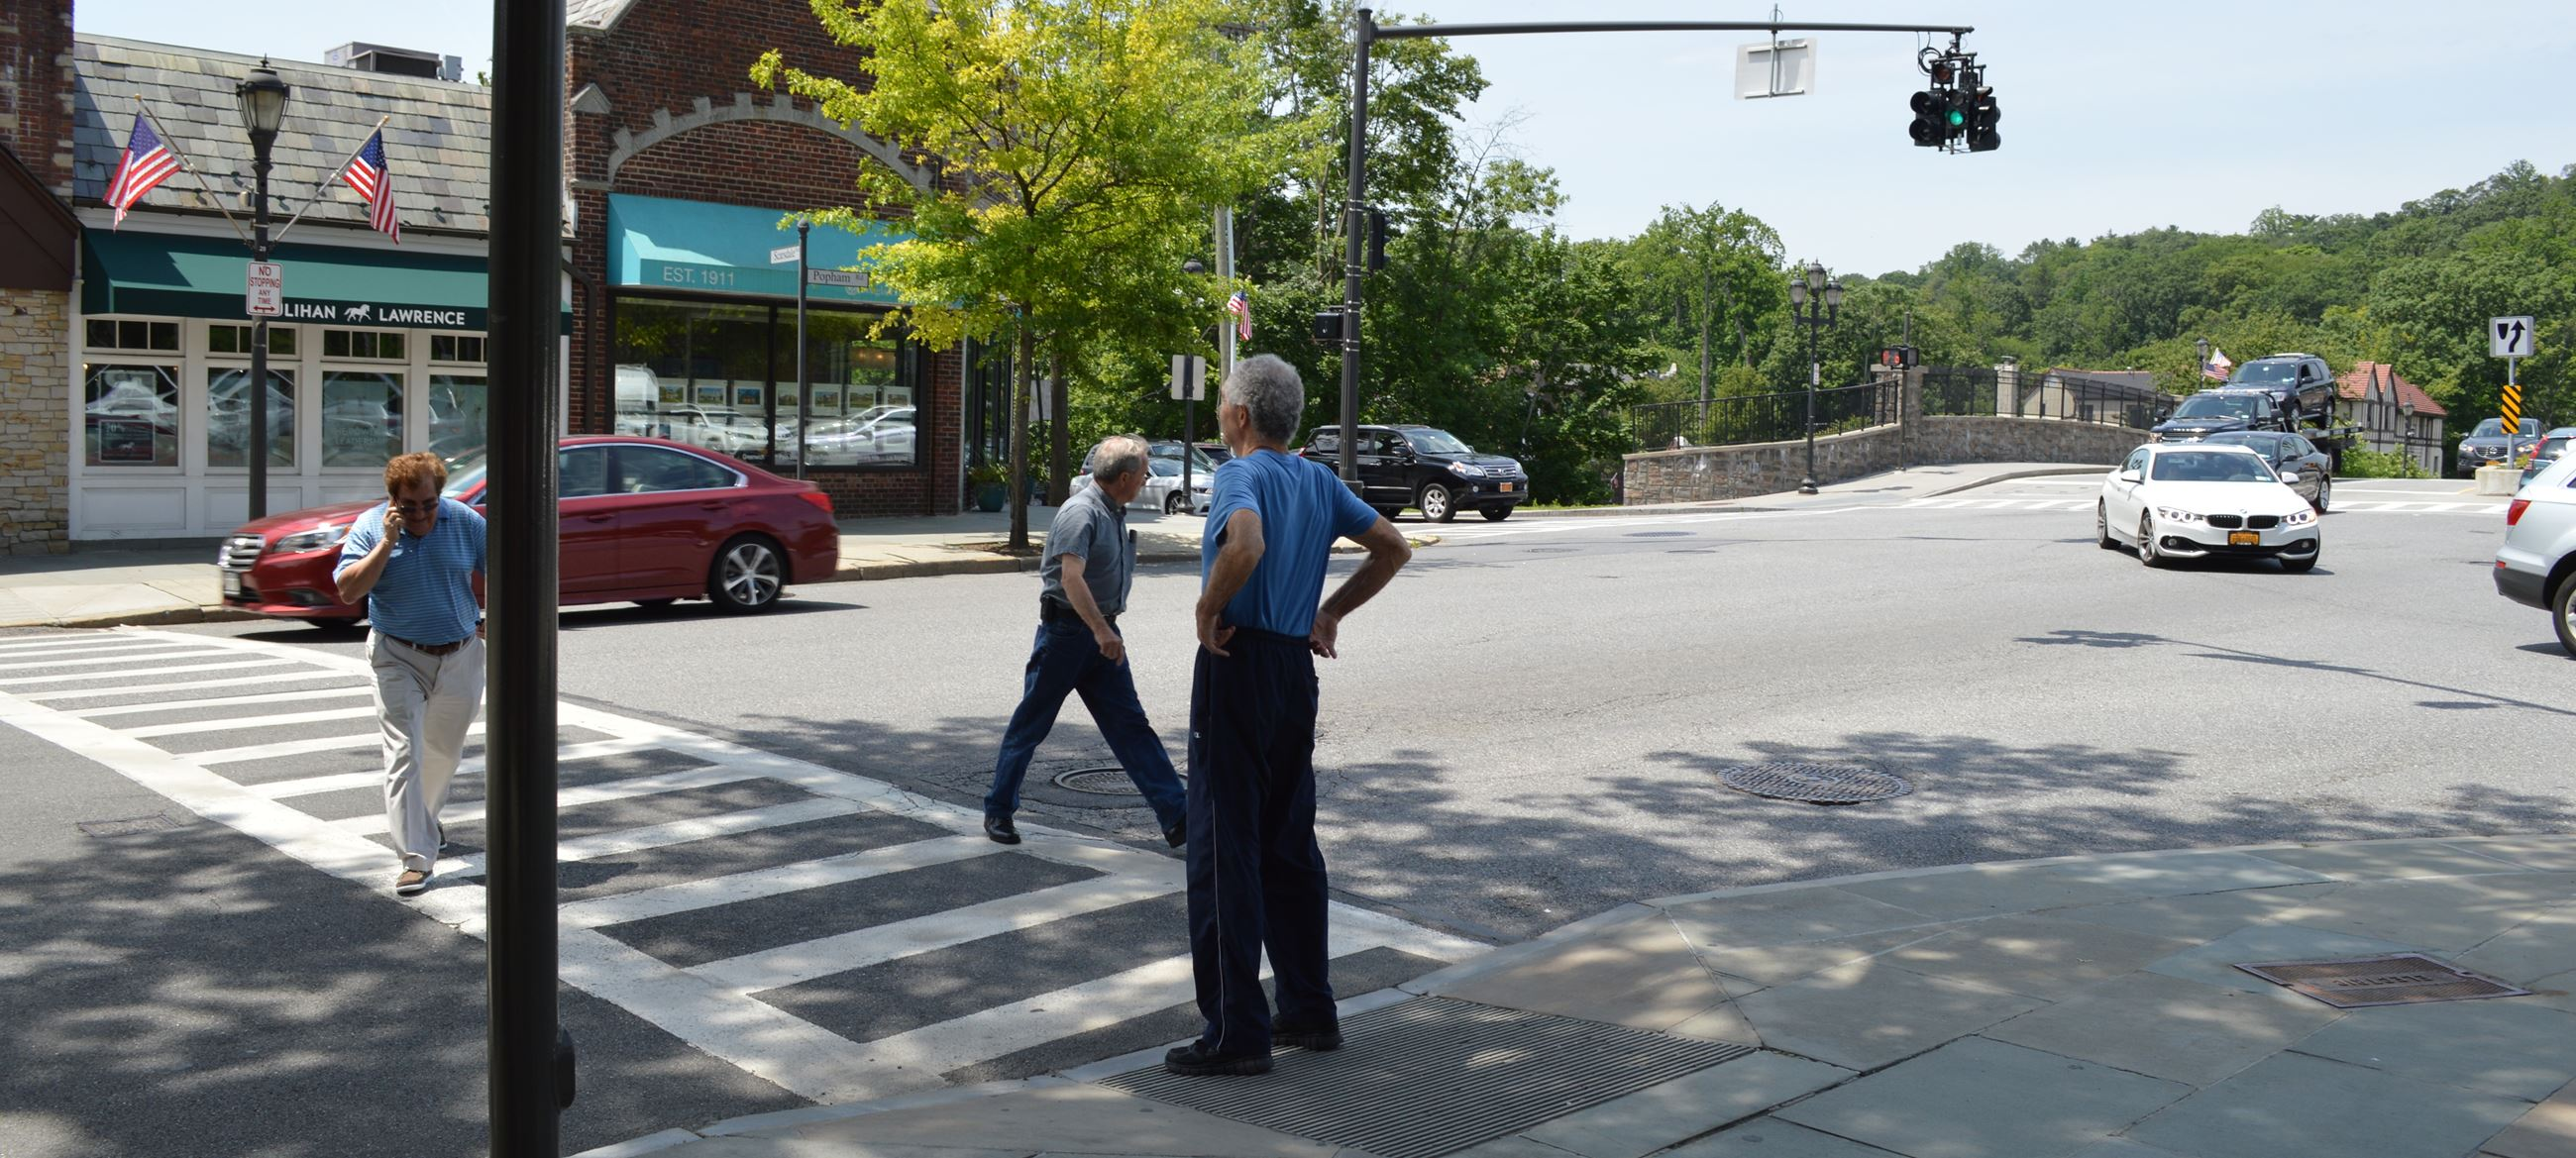 Pedestrians Crossing On green with cell phone (jpg)